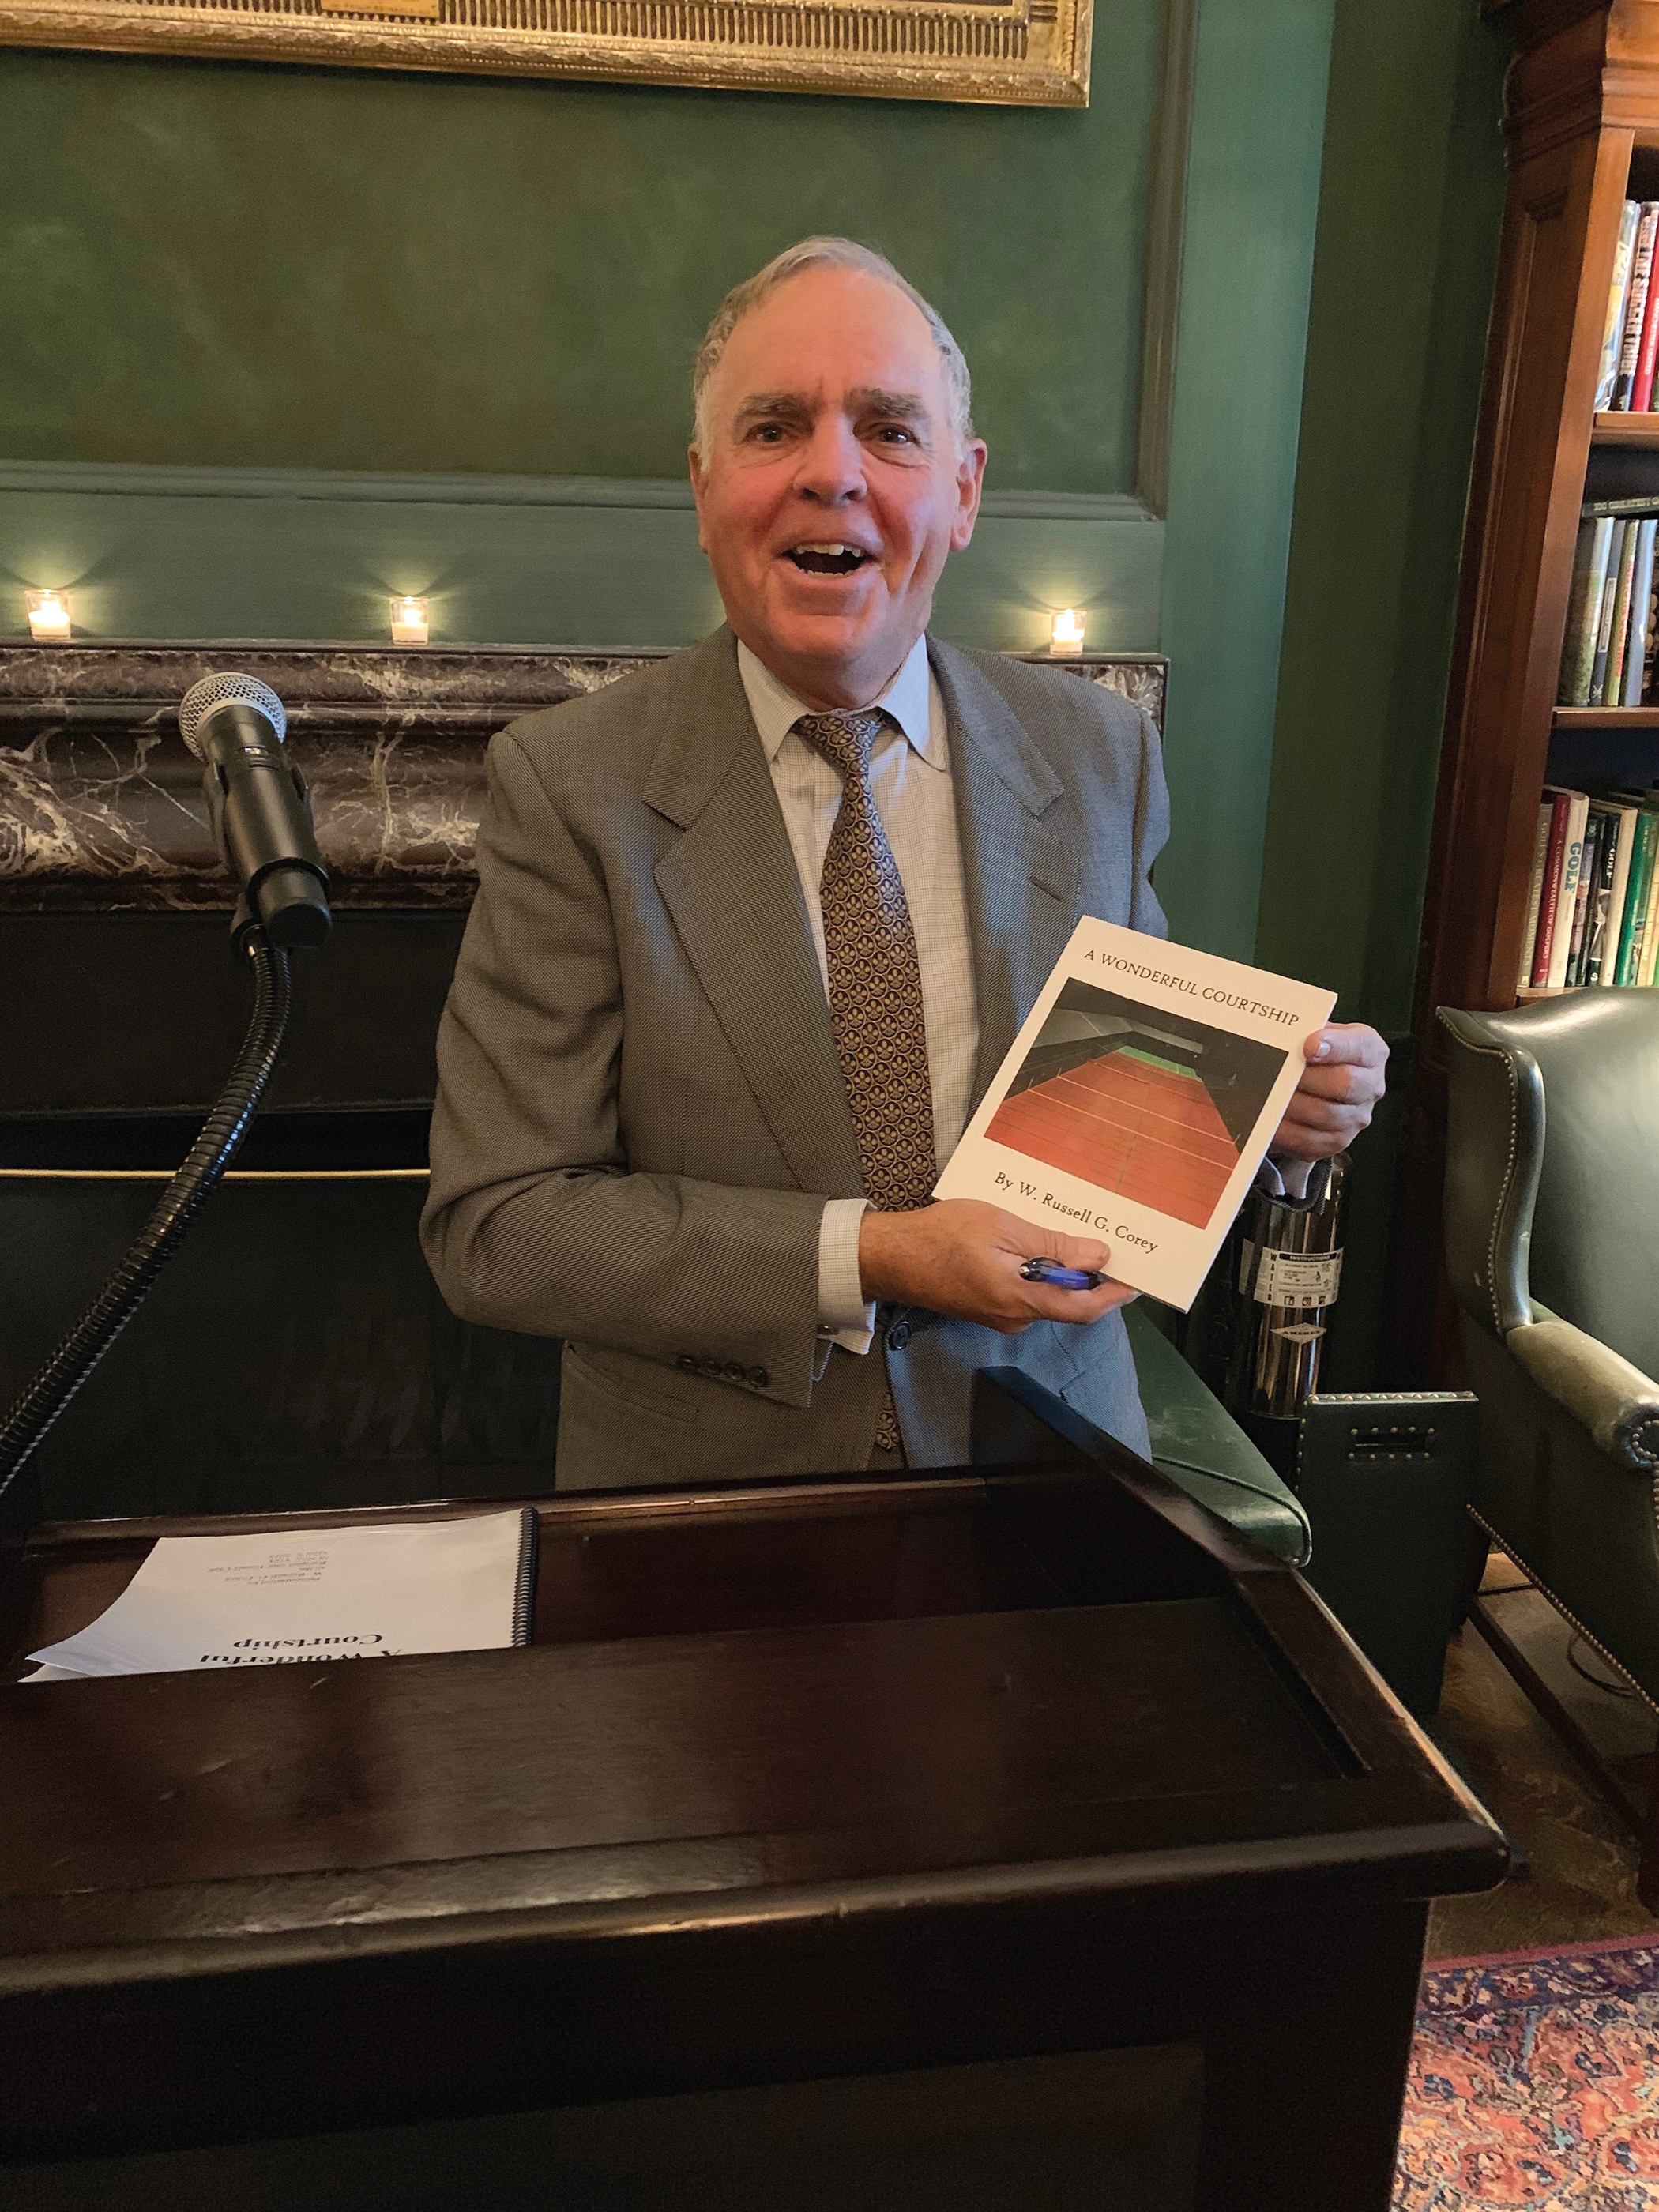 Russell Corey '65 with his new book, A Wonderful Courtship.